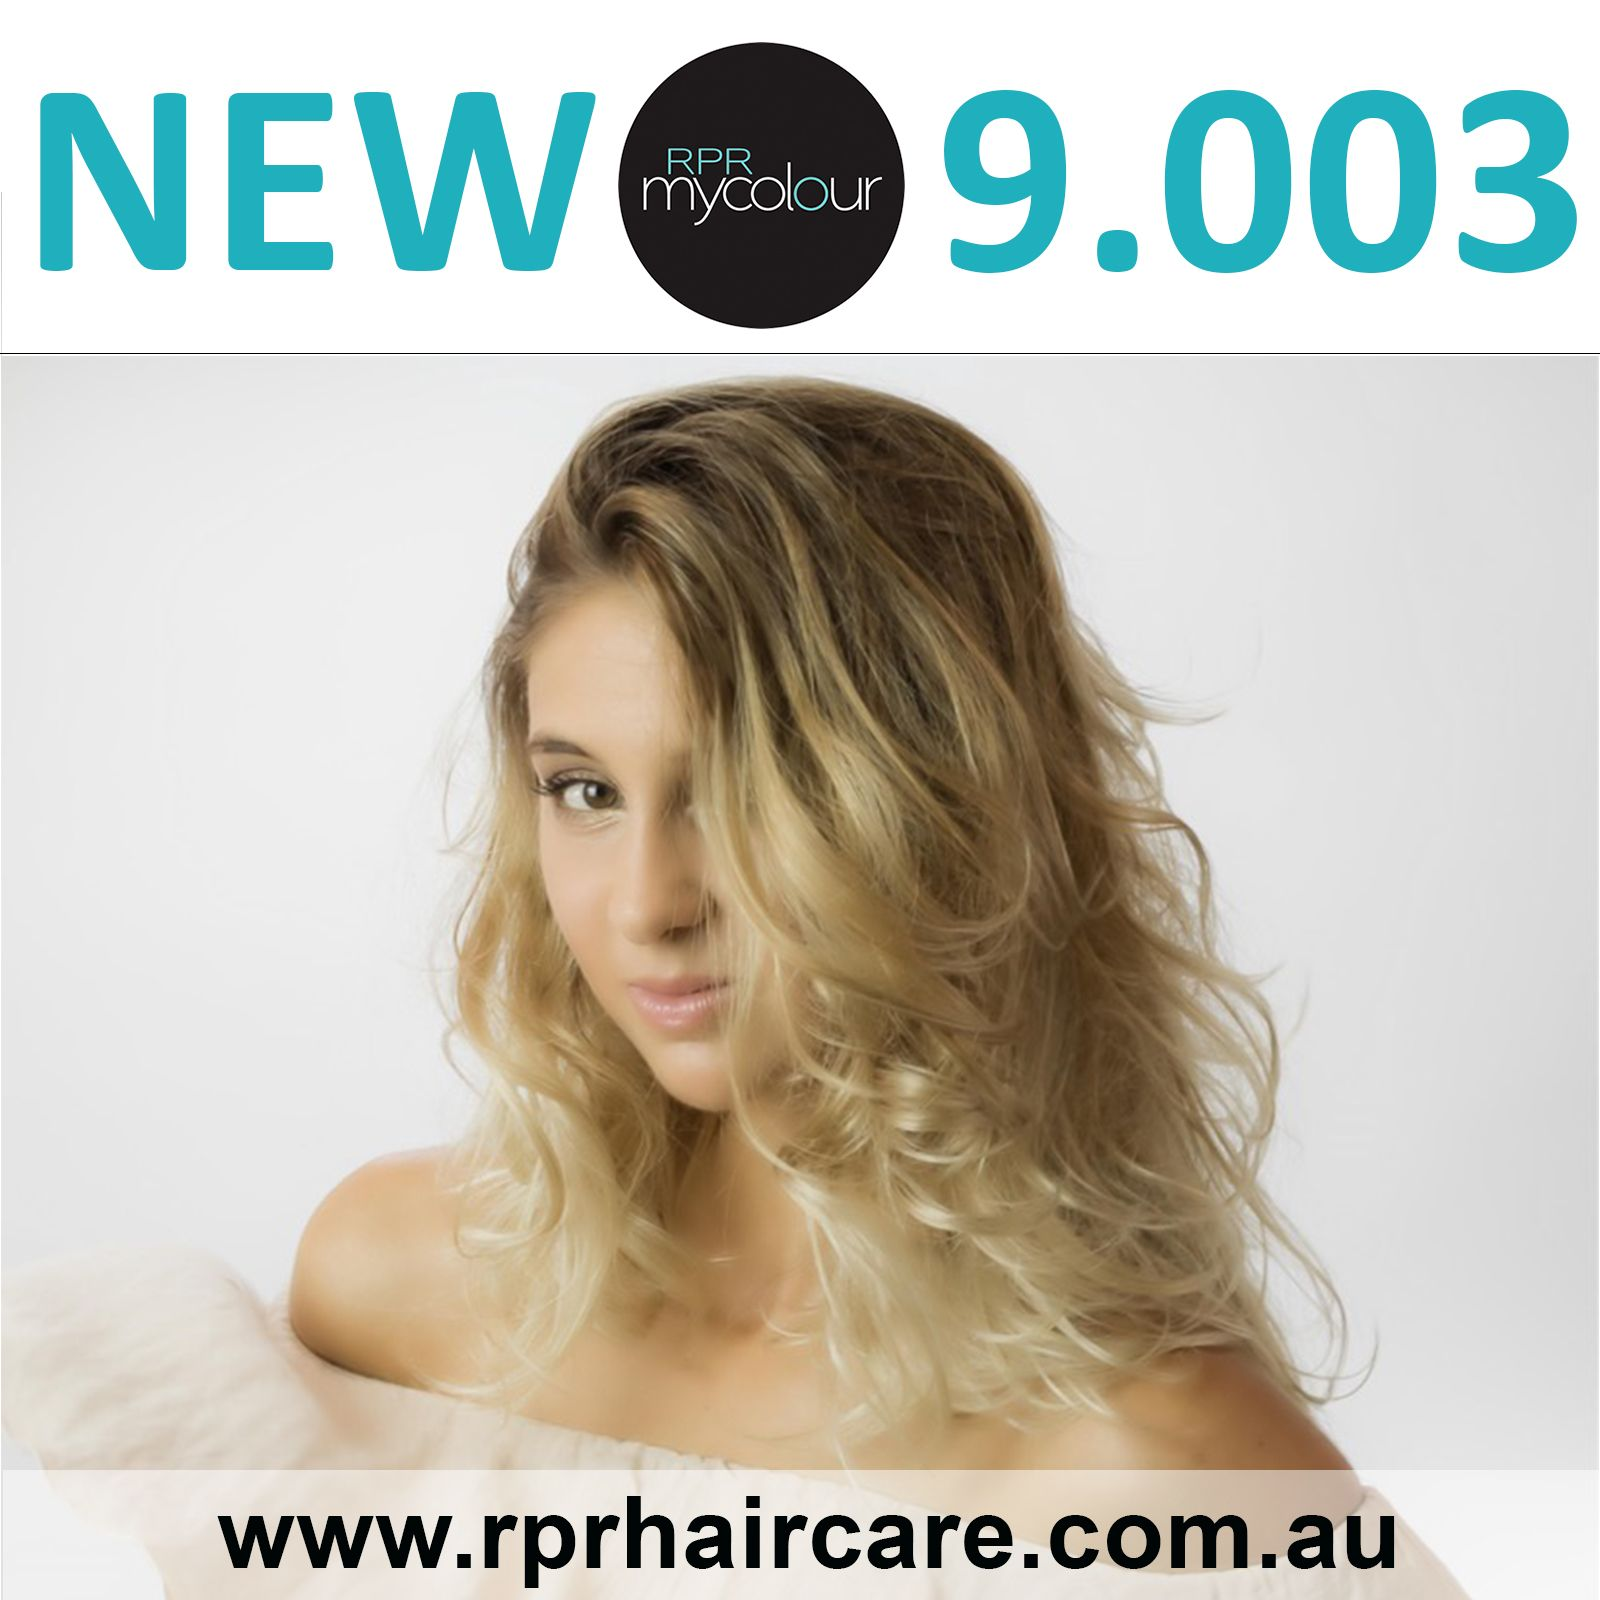 New RPR MyColour tone 9.003. Expanding the possibilities